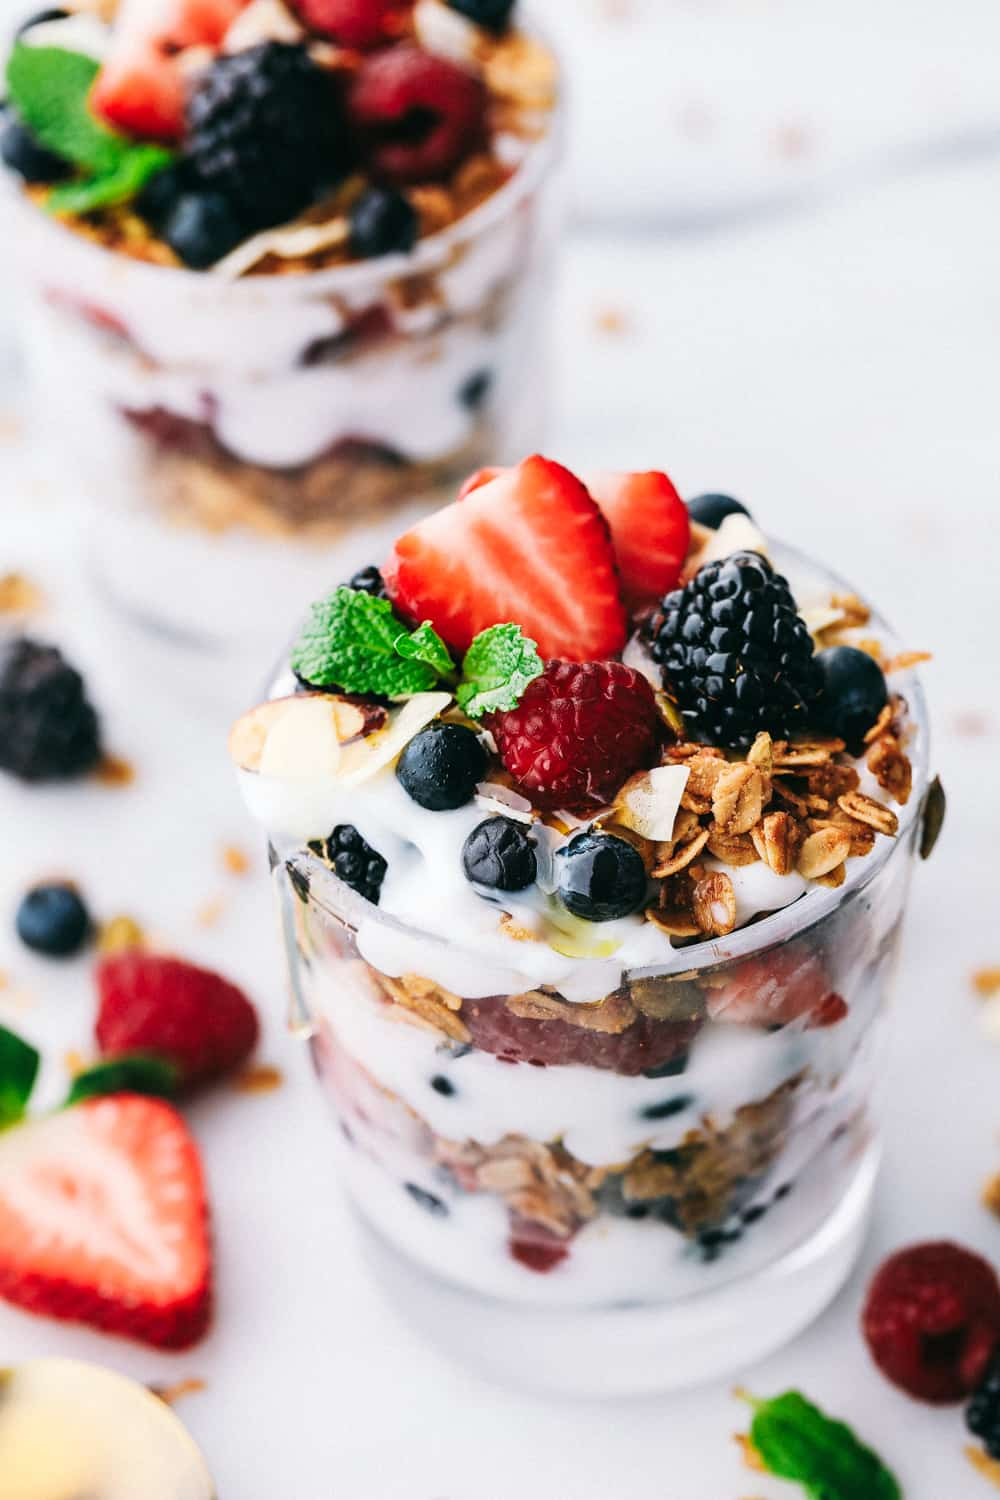 yogurt parfaits layered in glass cups garnished with mint and berries spread around the glass cups for display.